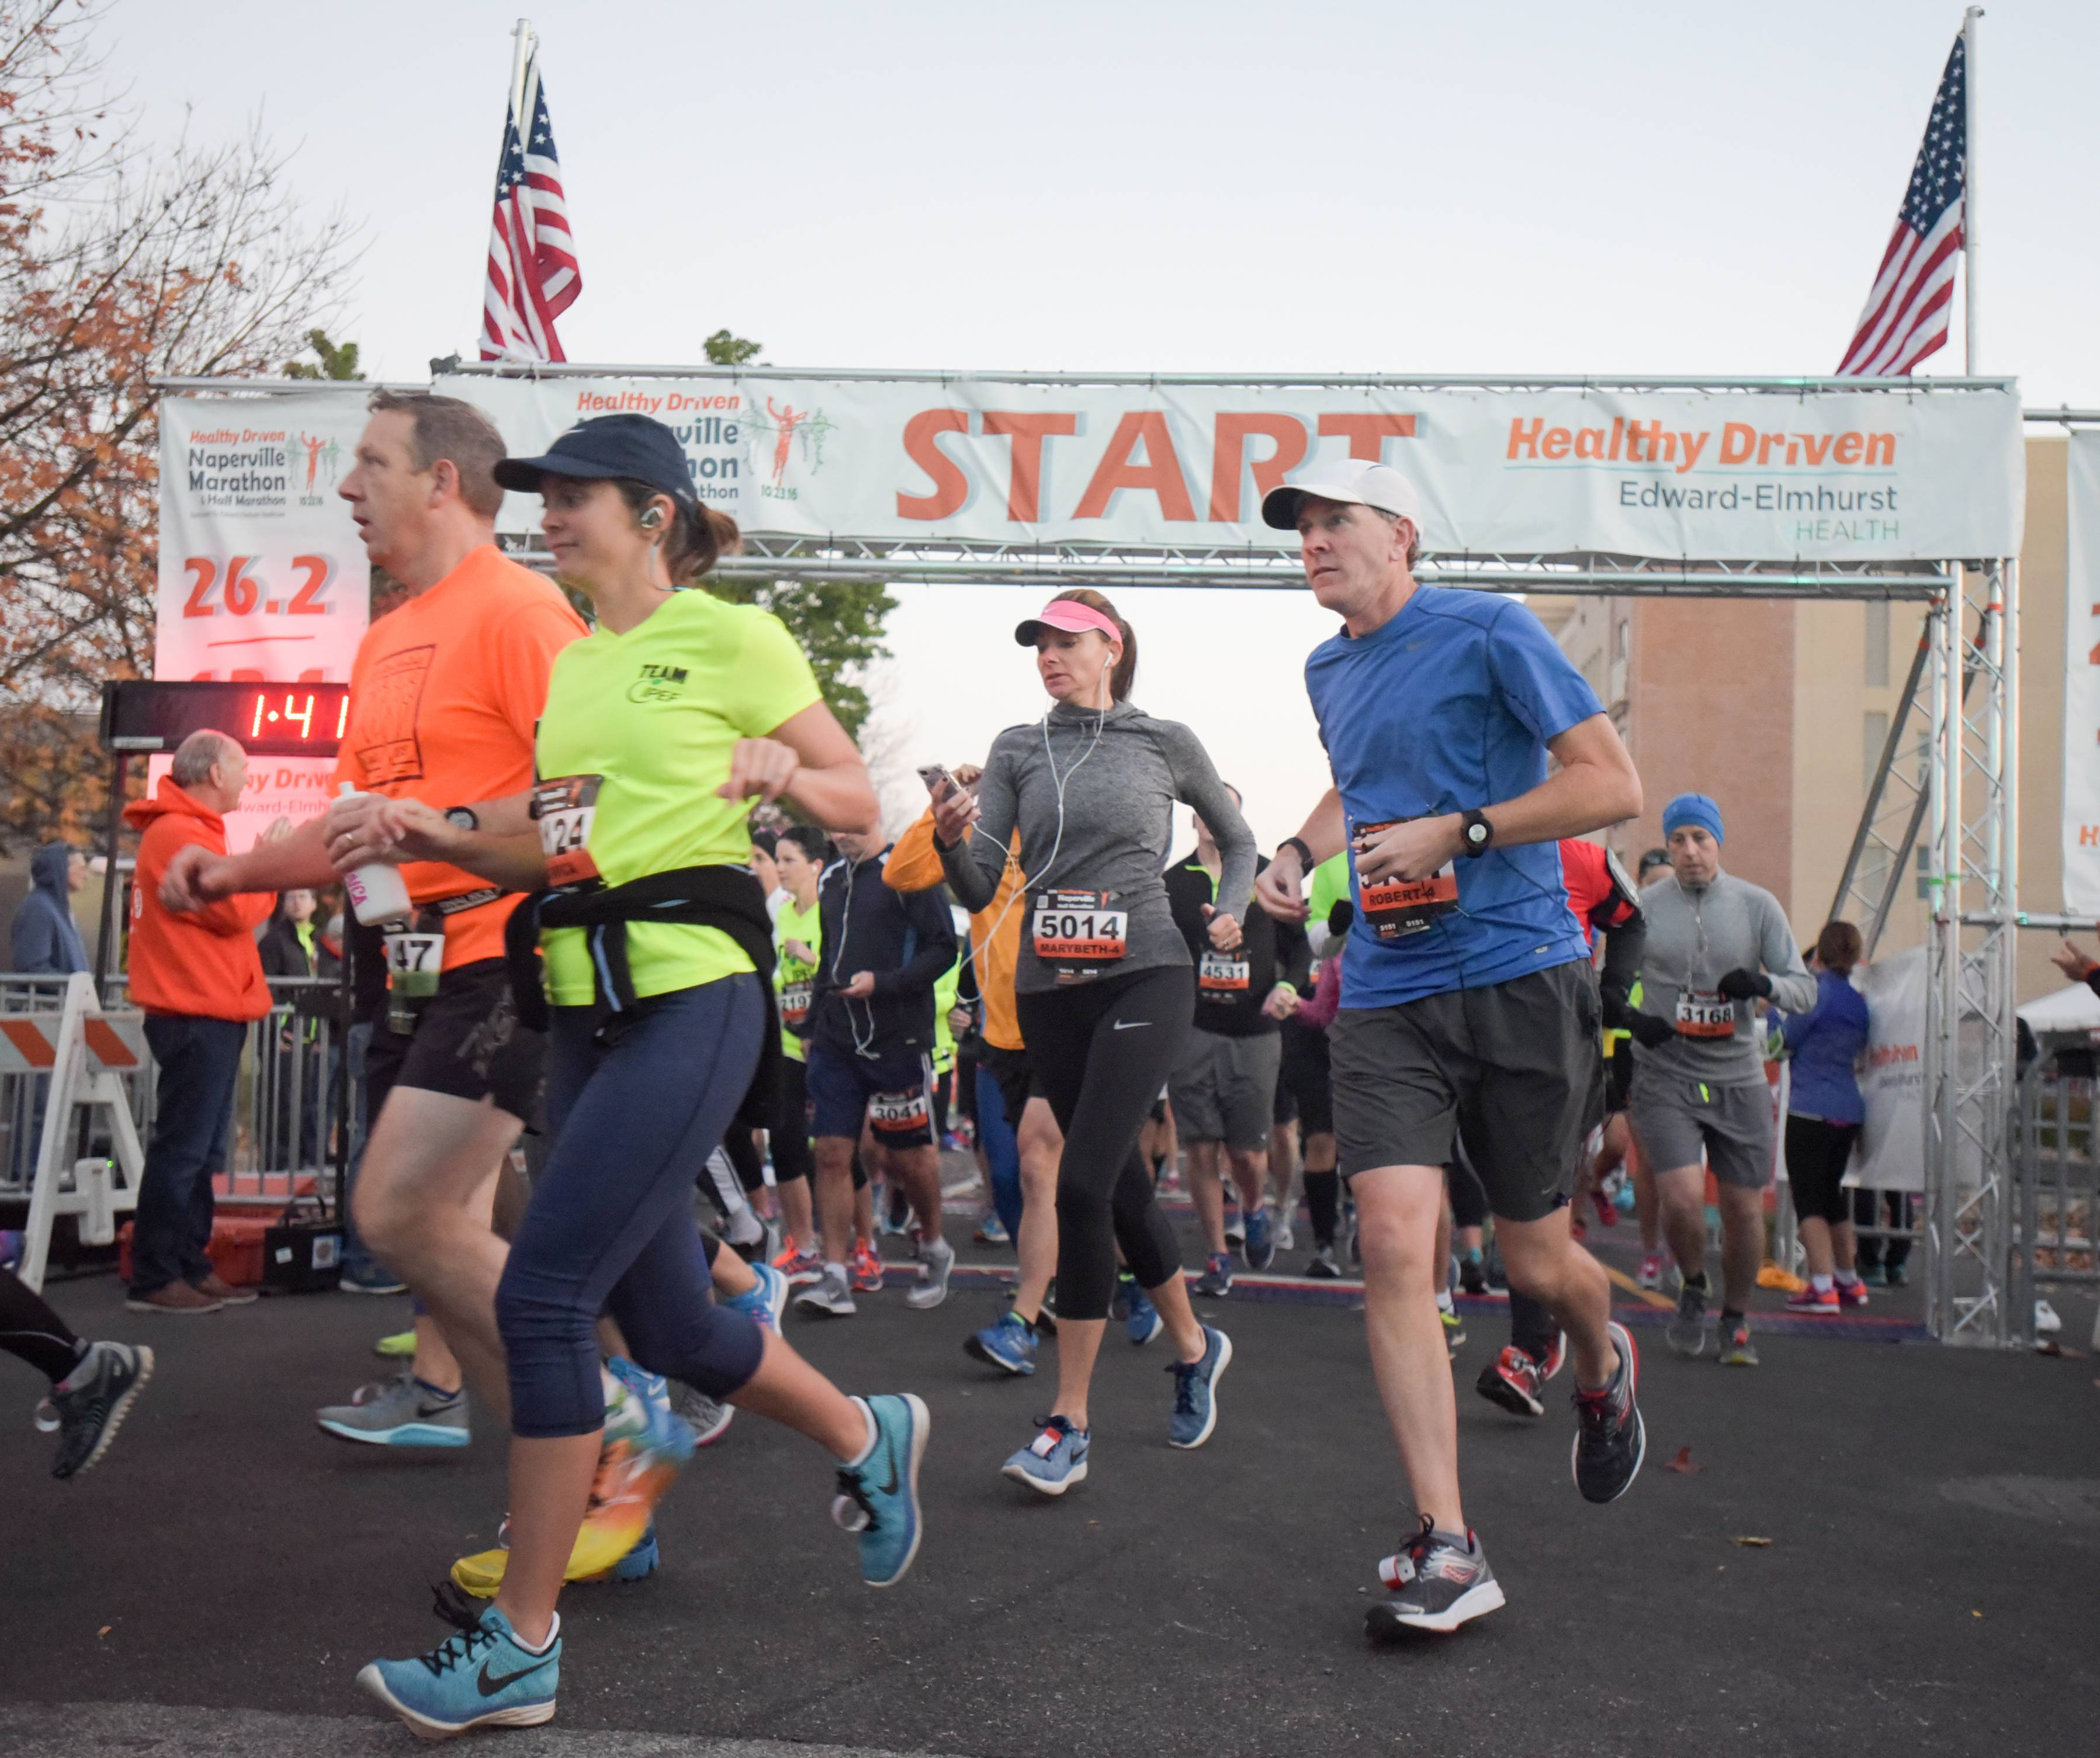 Declining interest and increasing concerns about road closures has led organizers of the Naperville Marathon to scale the event back next year to a half marathon and 5K.